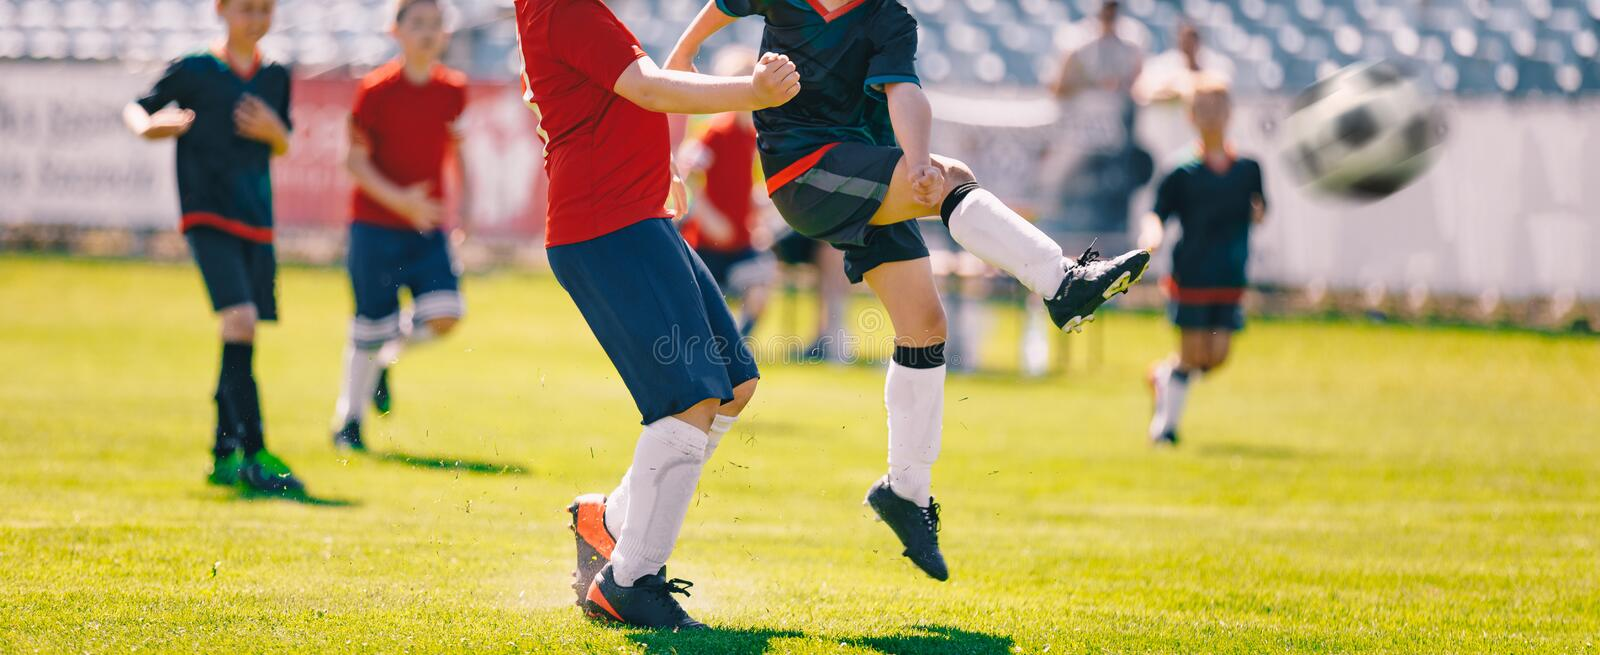 Children Play Soccer Game. Young Boys Running and Kicking Football Ball on Grass Sports Field. Football Final Game of the Youth Tournament royalty free stock photography